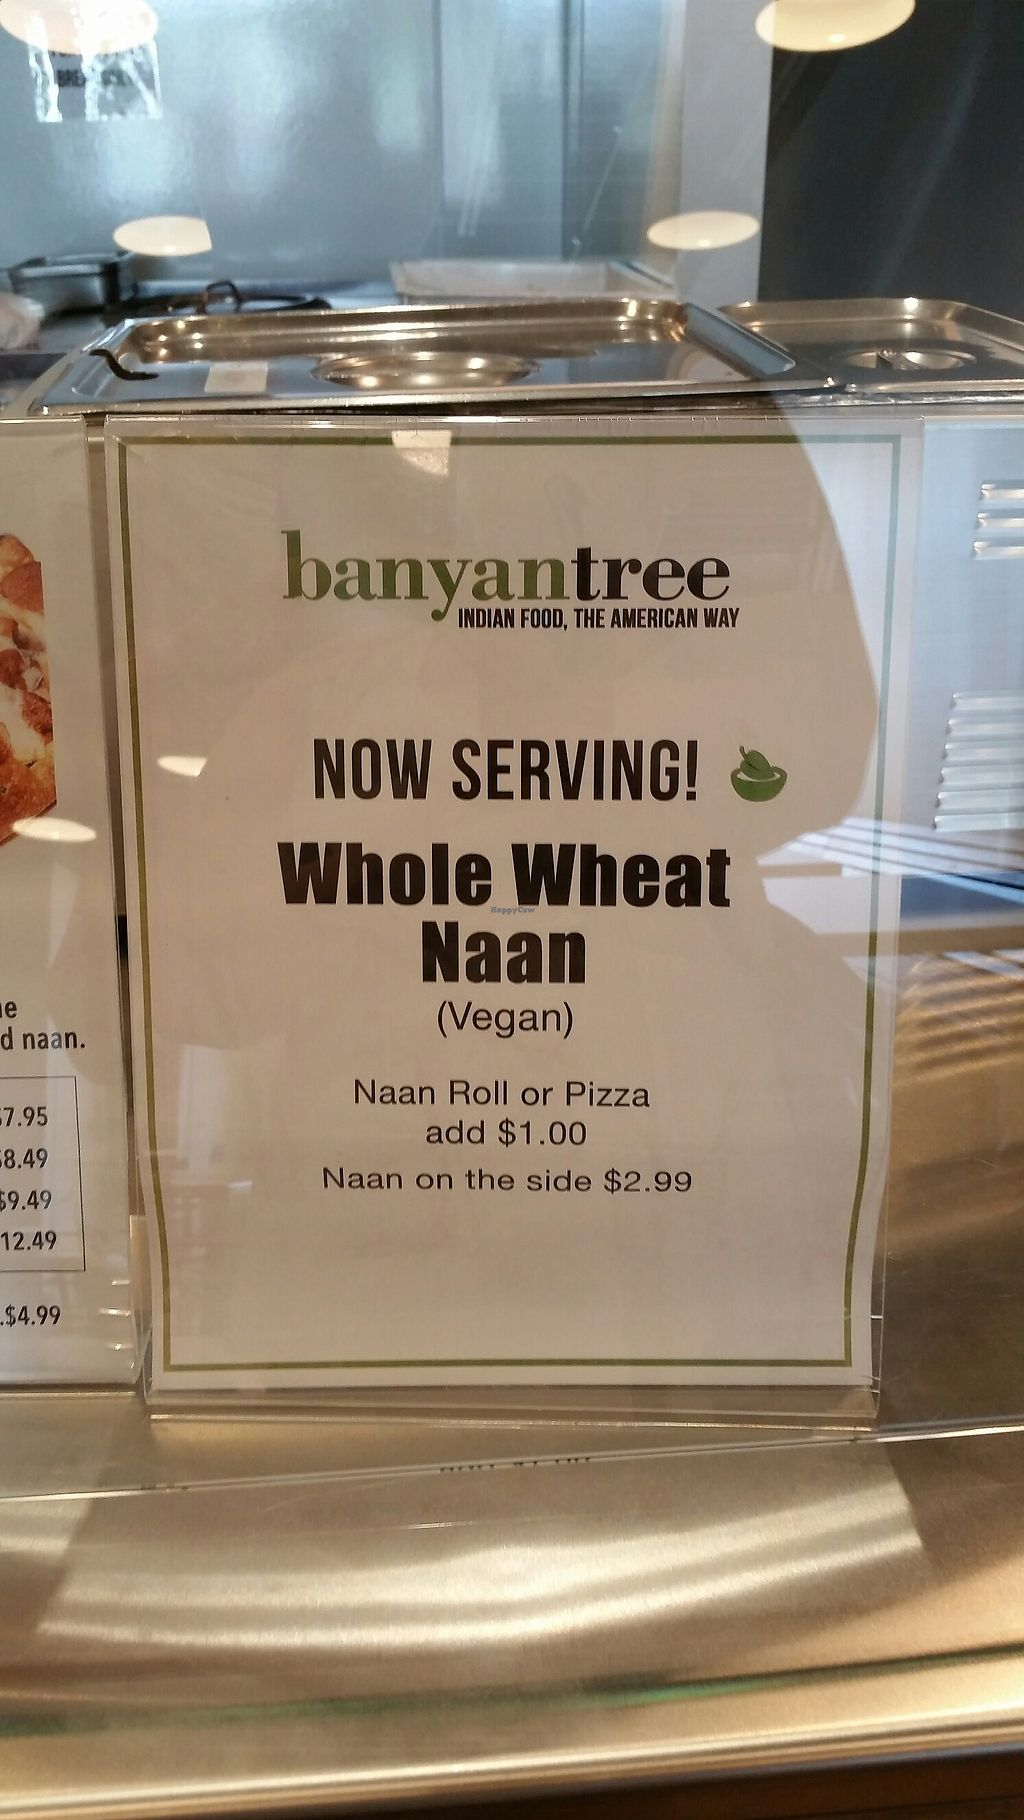 """Photo of Banyan Tree South Asian Grill  by <a href=""""/members/profile/TheCopperValkyrie"""">TheCopperValkyrie</a> <br/>whole wheat naan! <br/> August 1, 2017  - <a href='/contact/abuse/image/78407/287699'>Report</a>"""